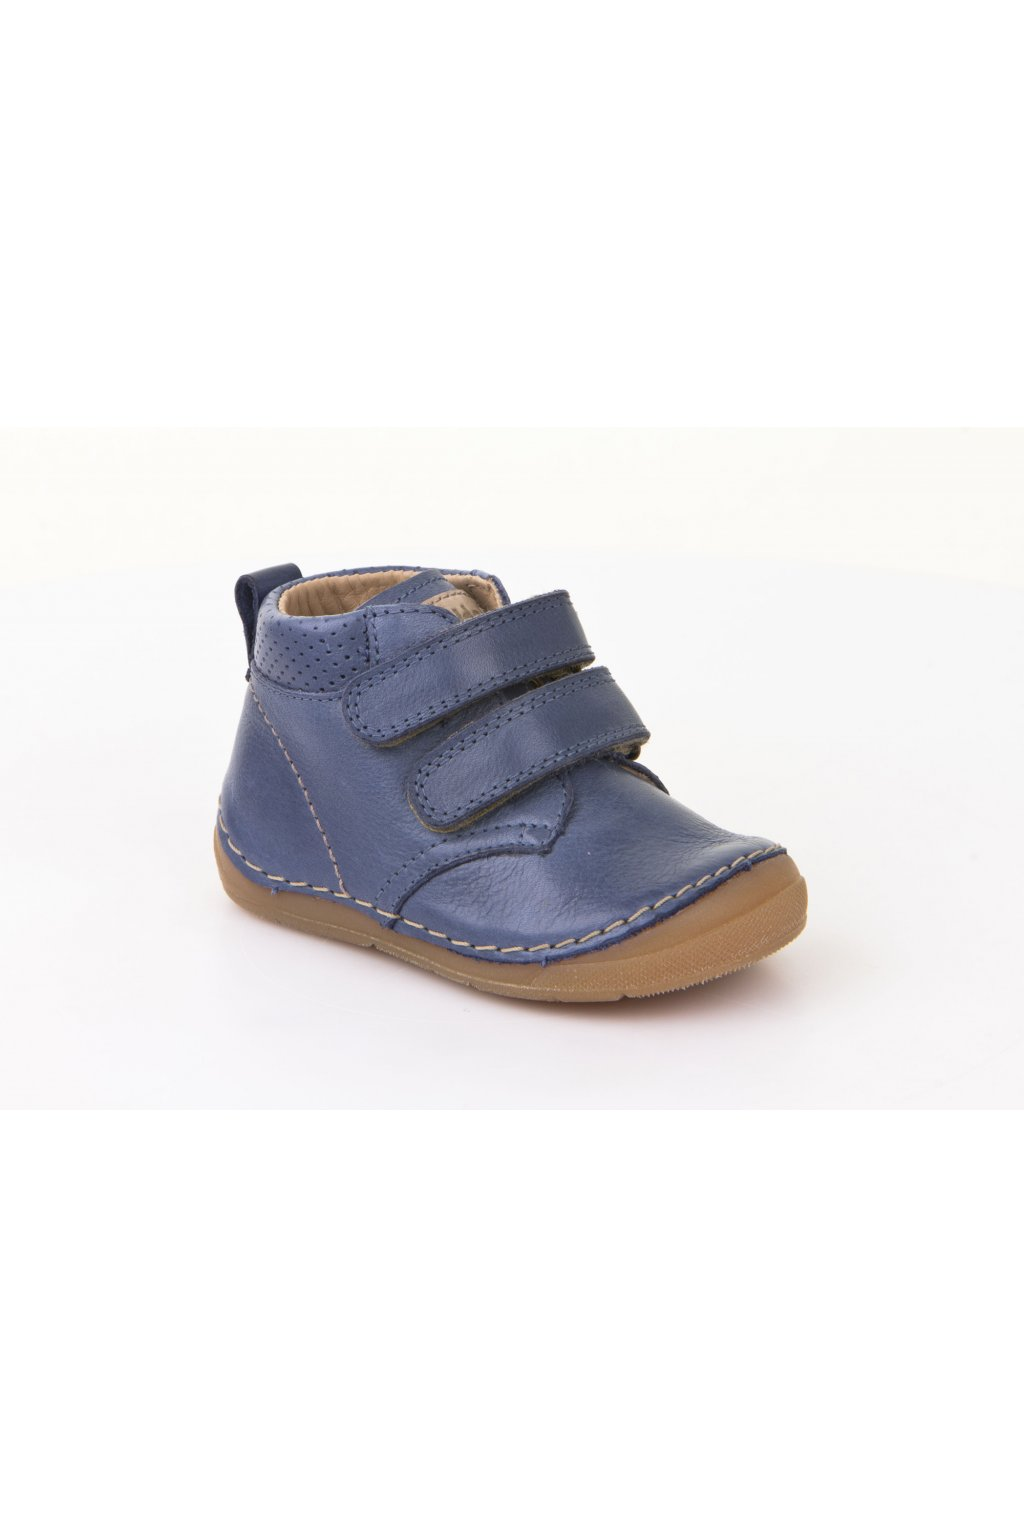 Froddo Shoes Denim